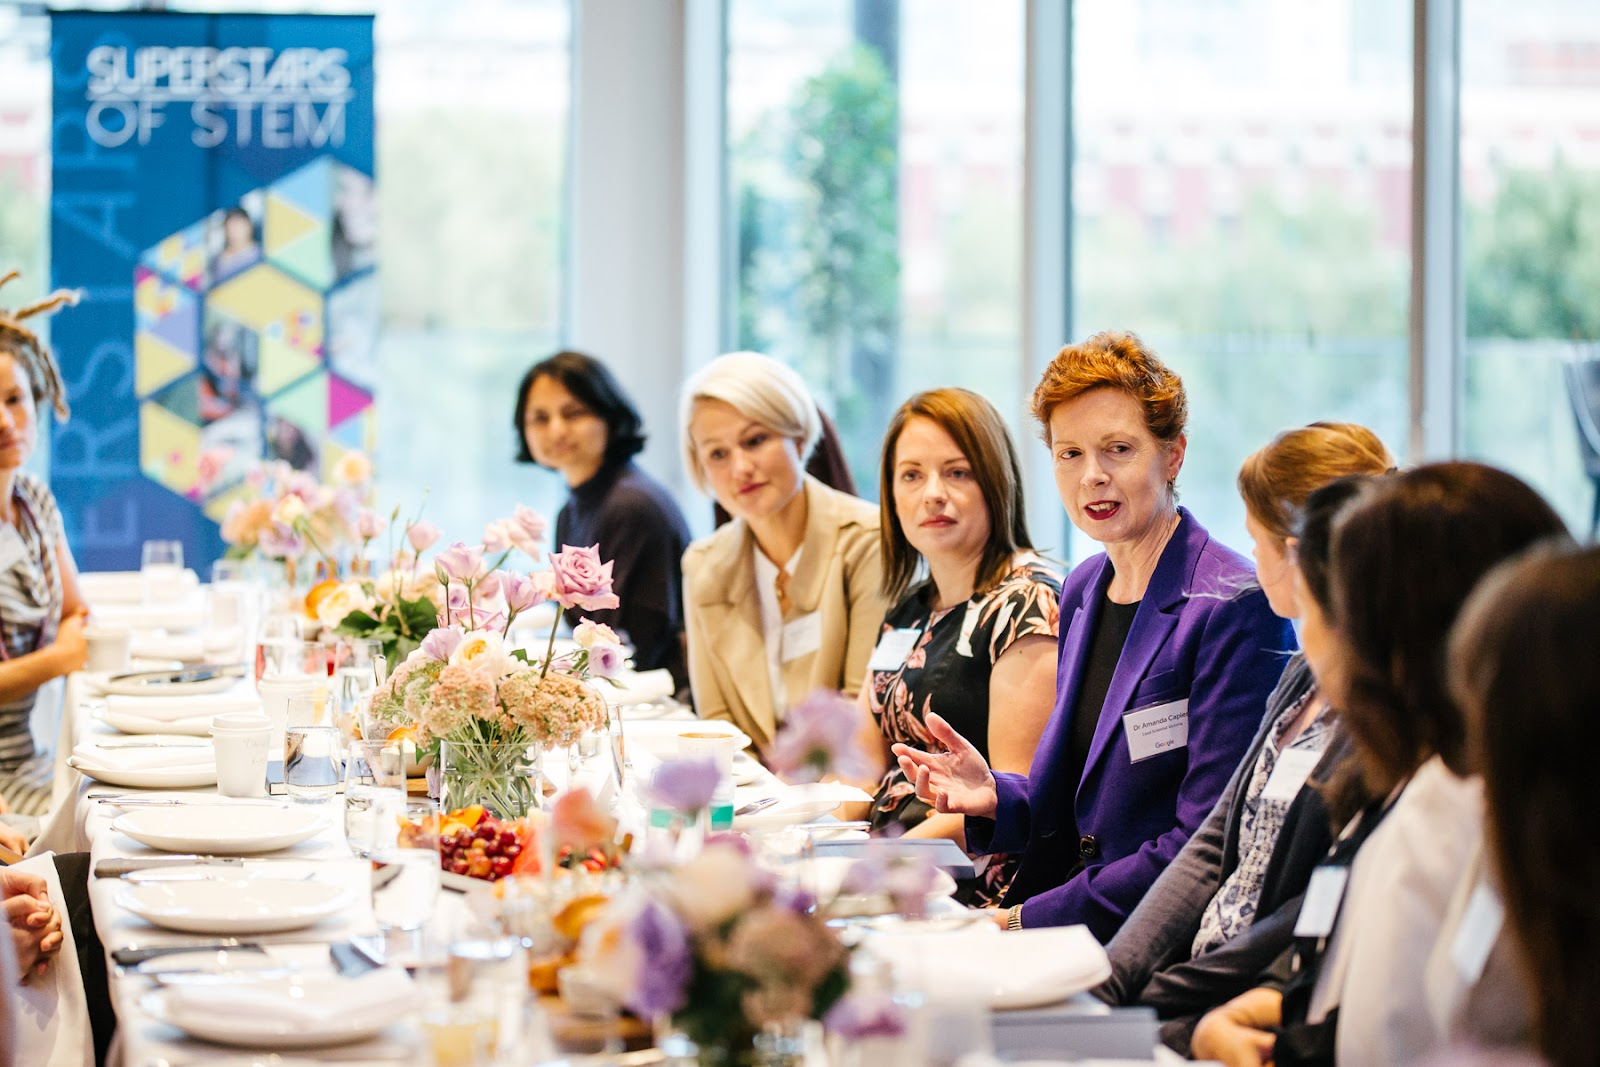 Photos of event attendees at the Women in STEM breakfast